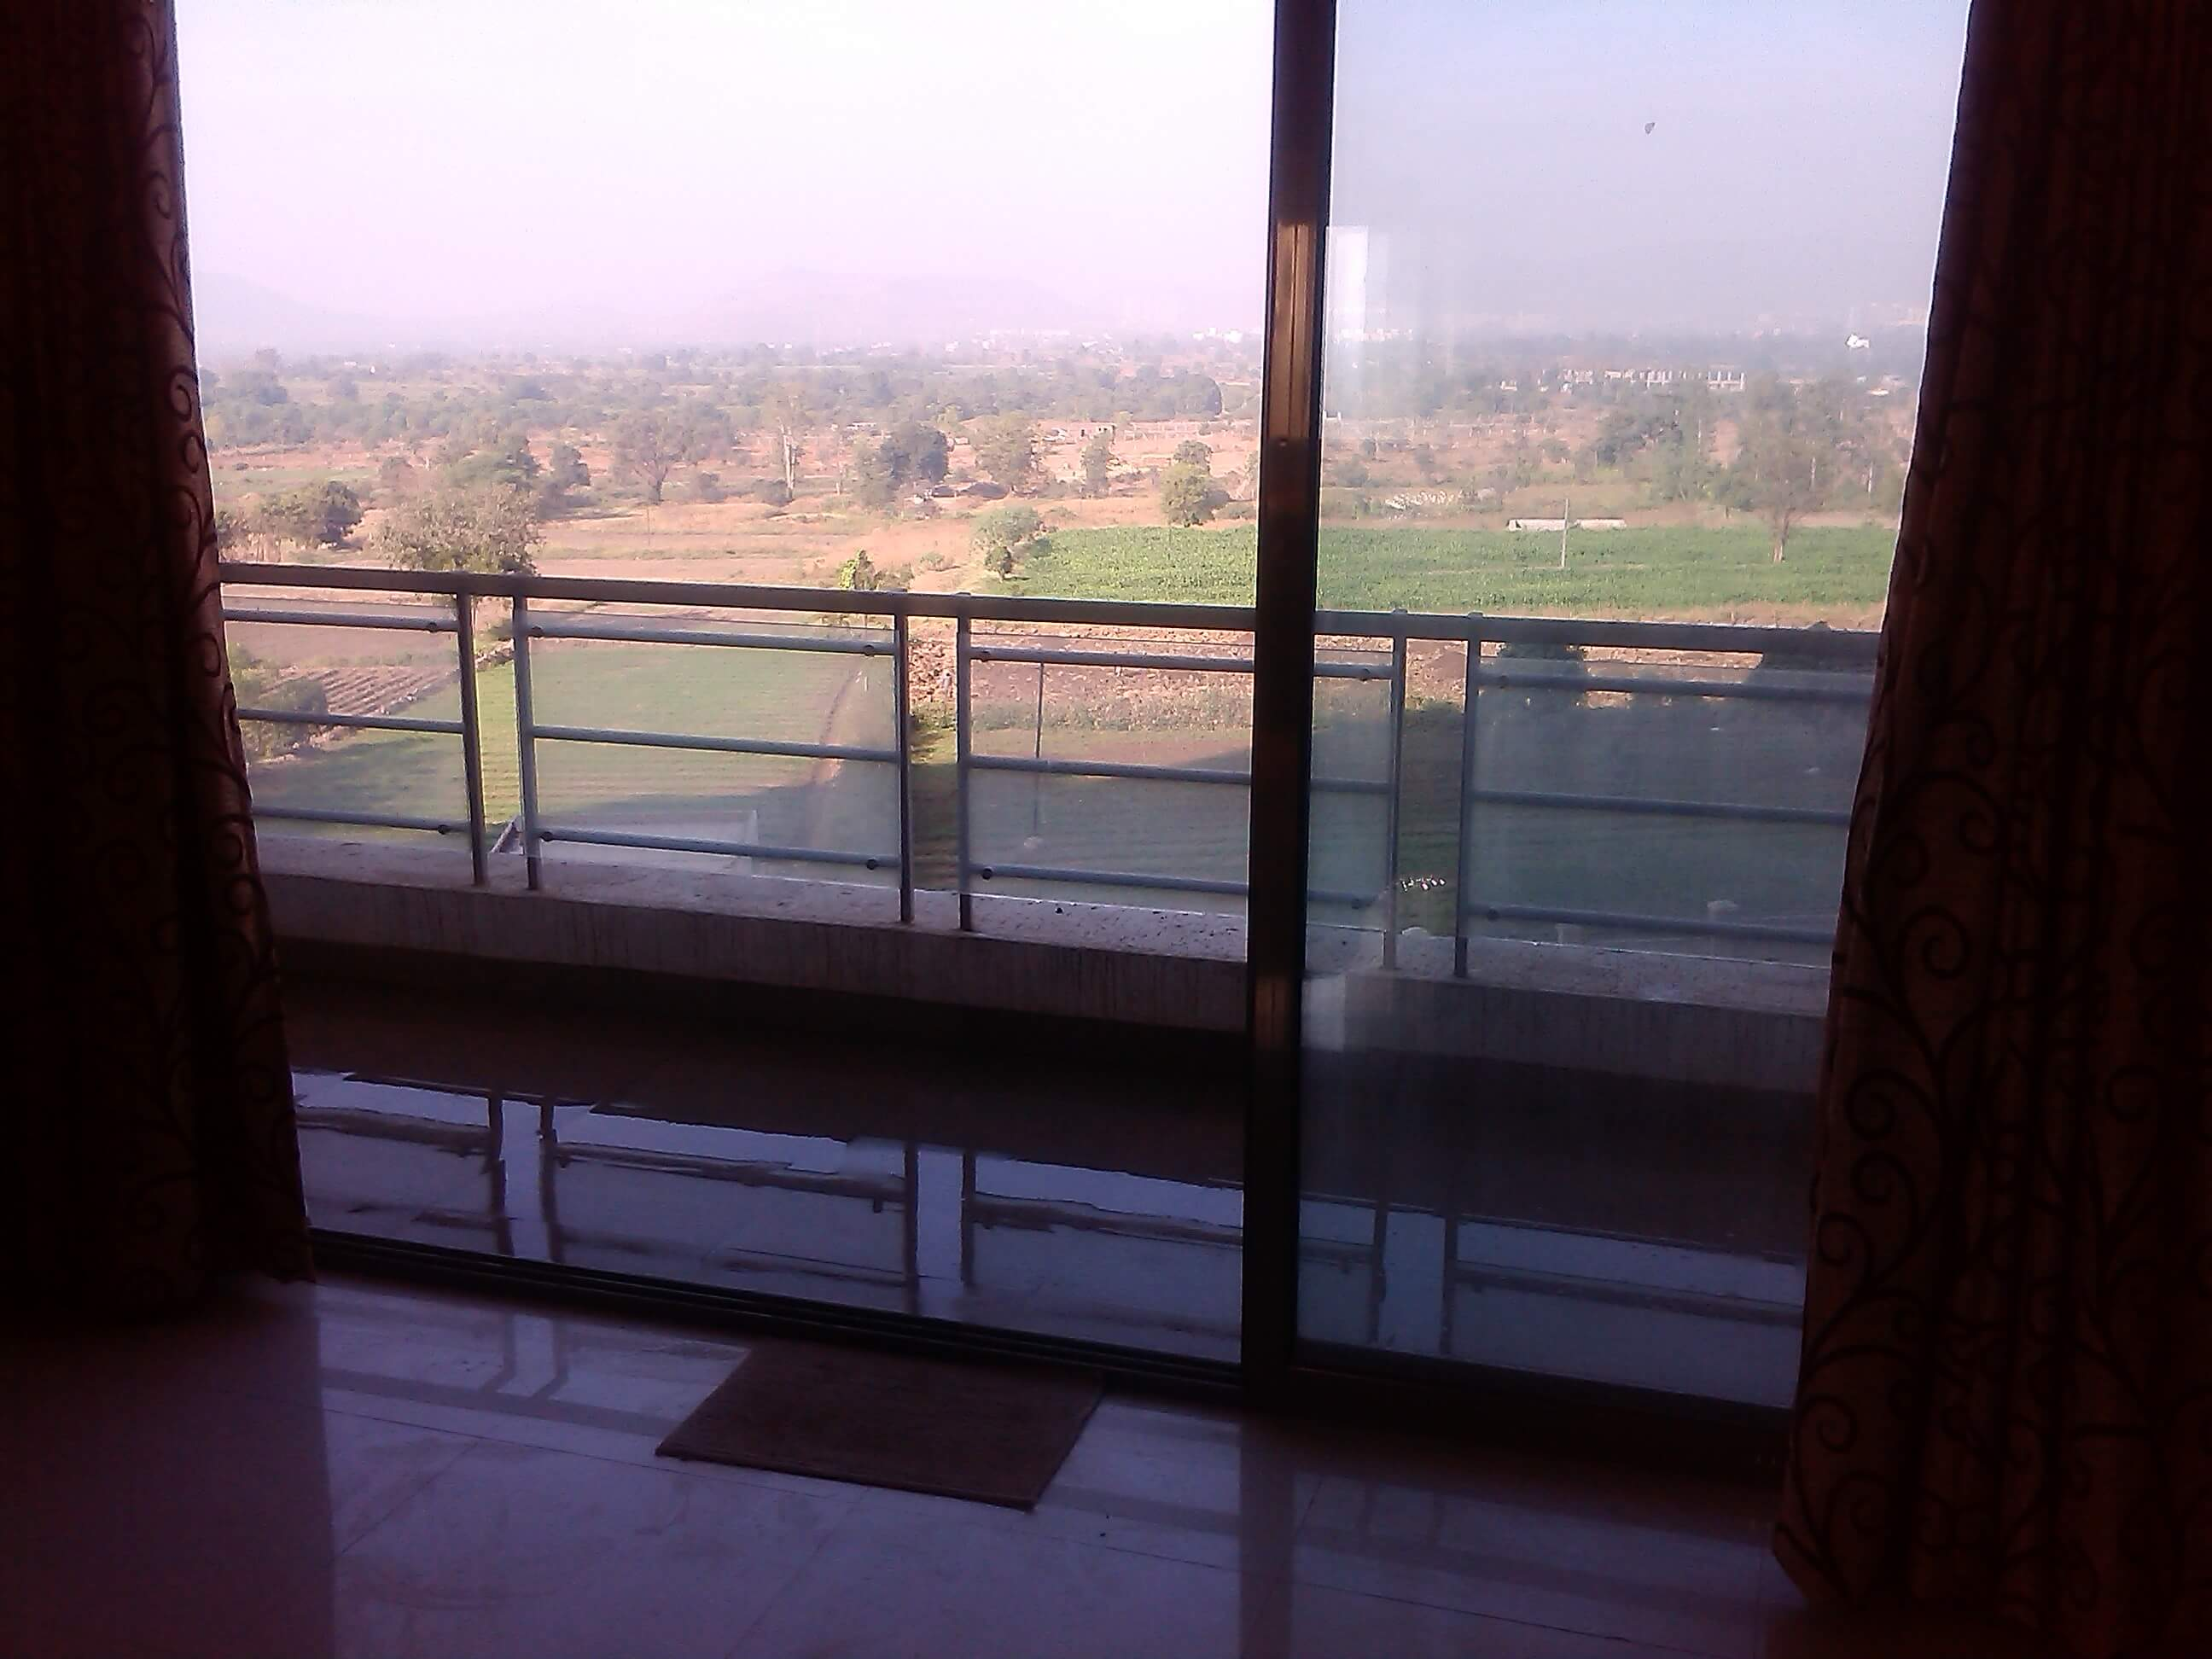 Spacious, Lavish & Ultra-modern Flat with nature around. Buy this premium property to settle down.